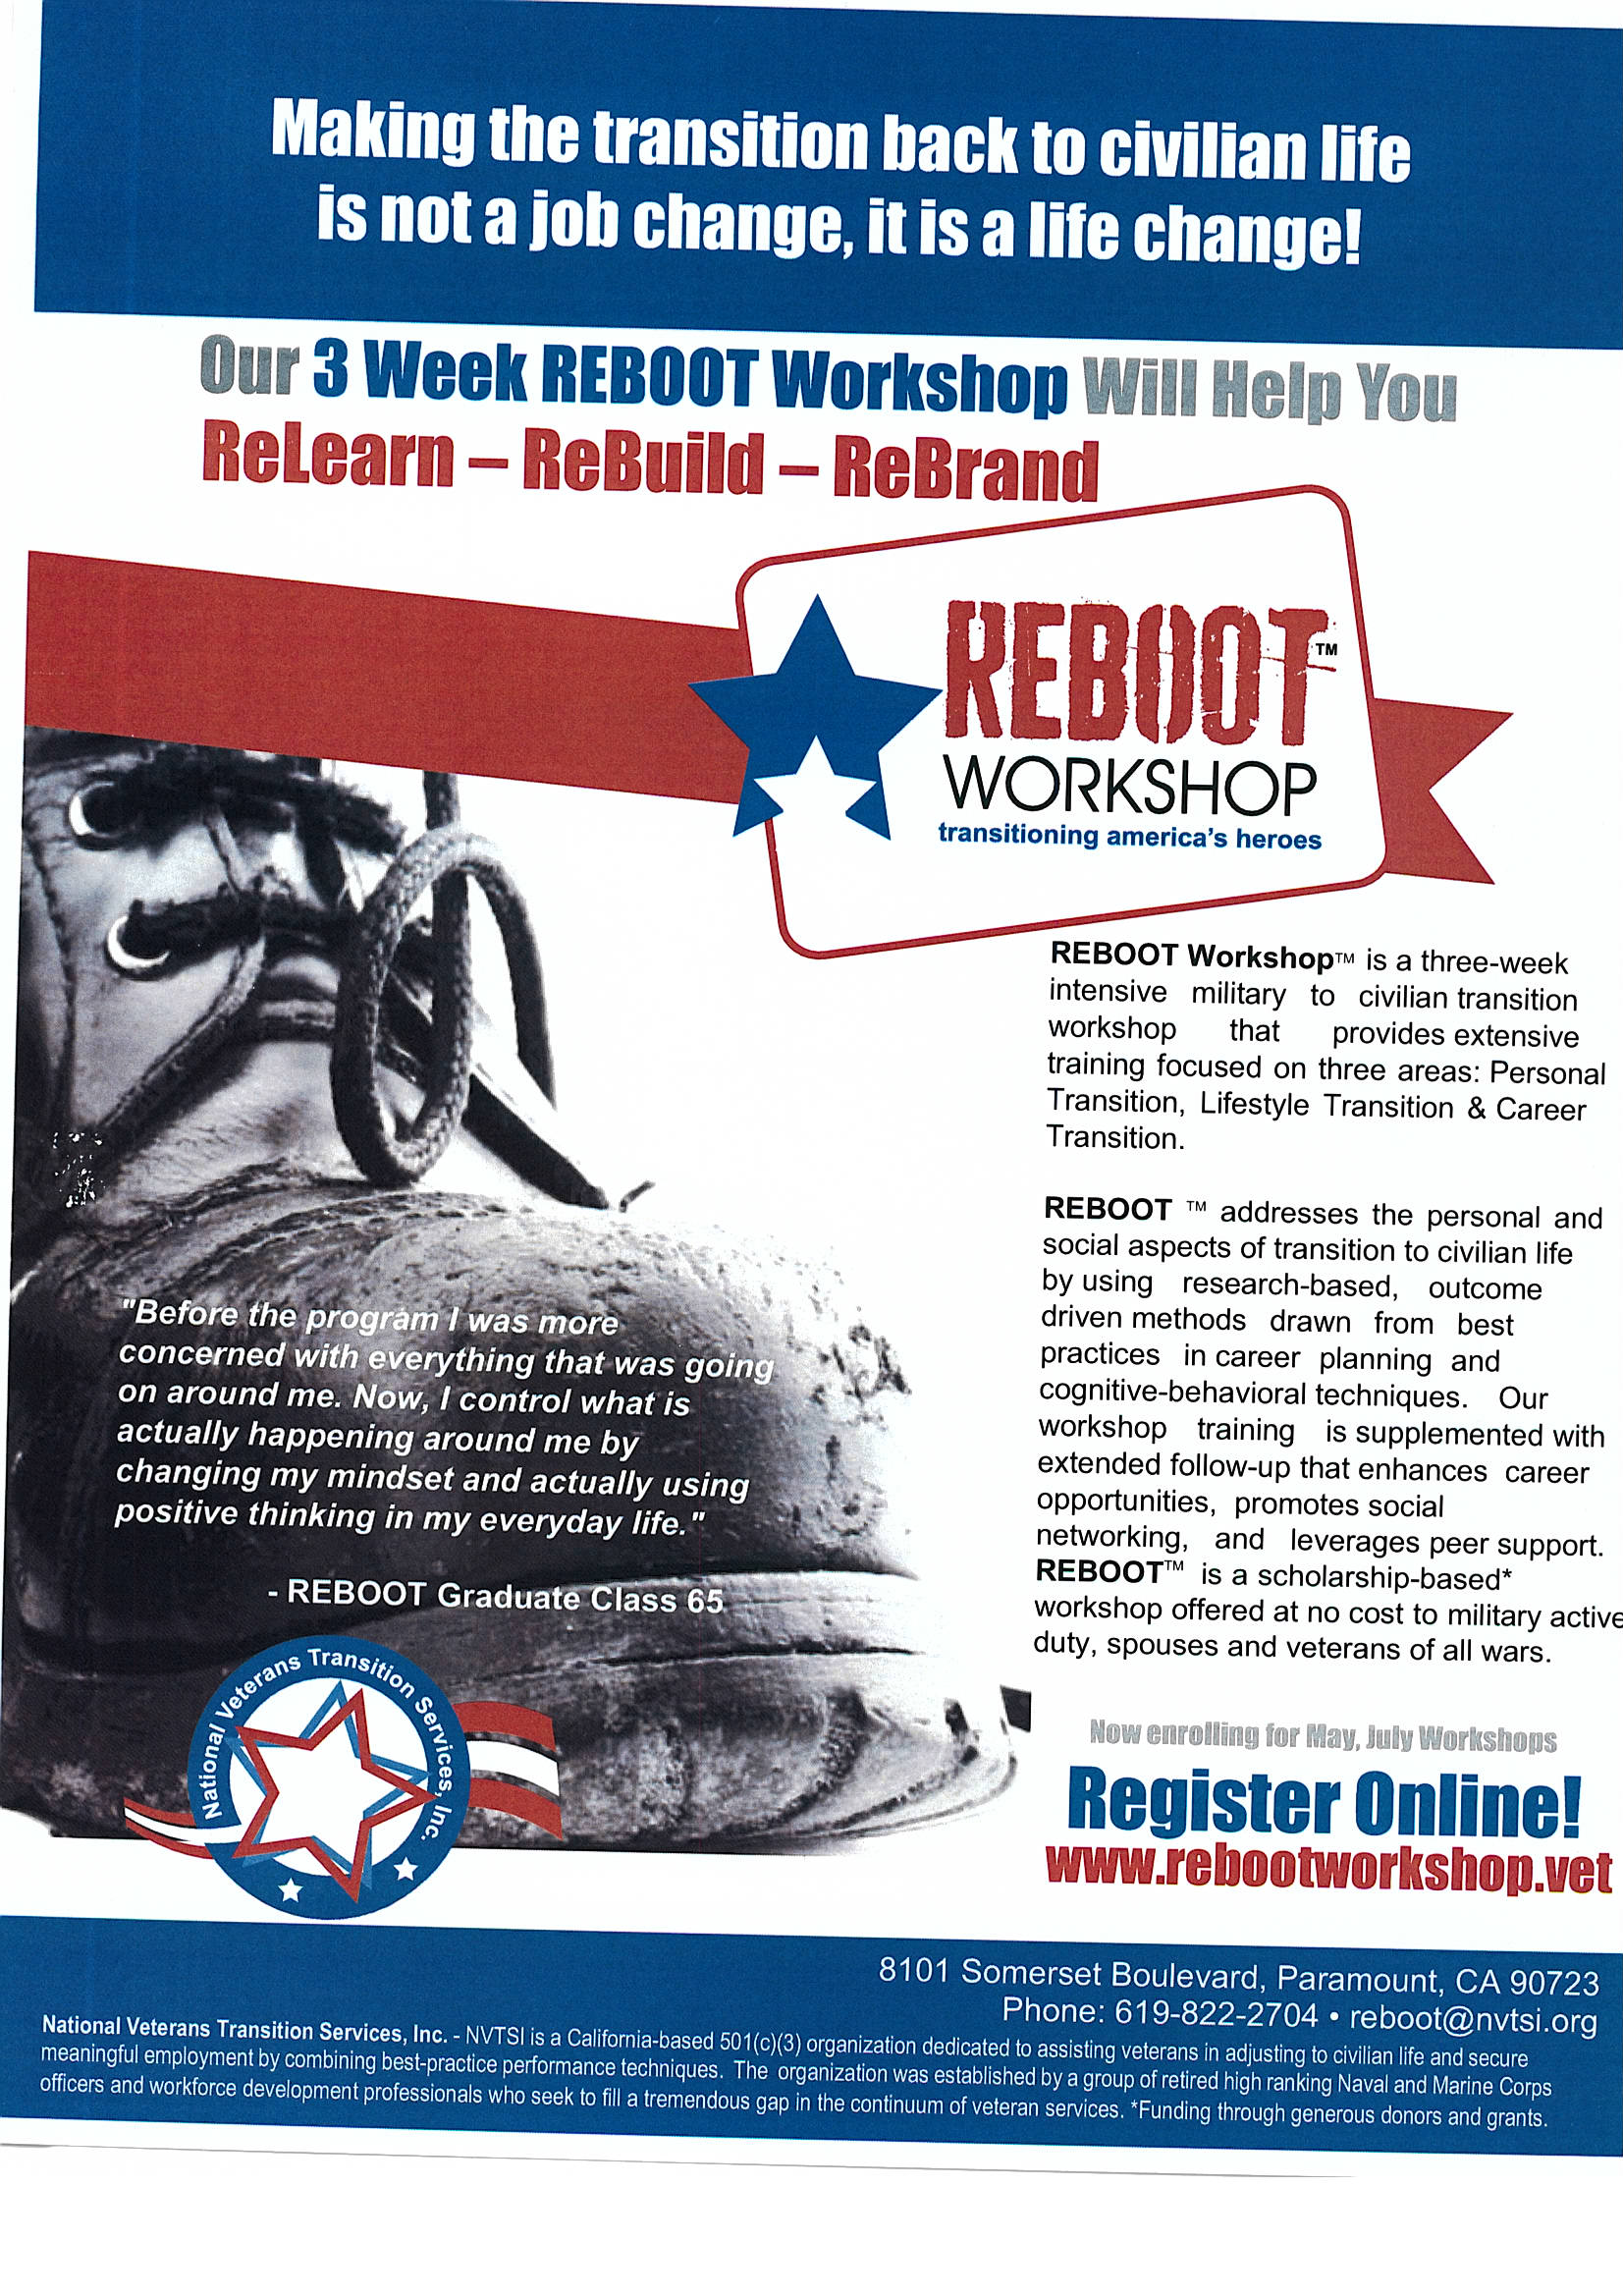 Reboot Workshop